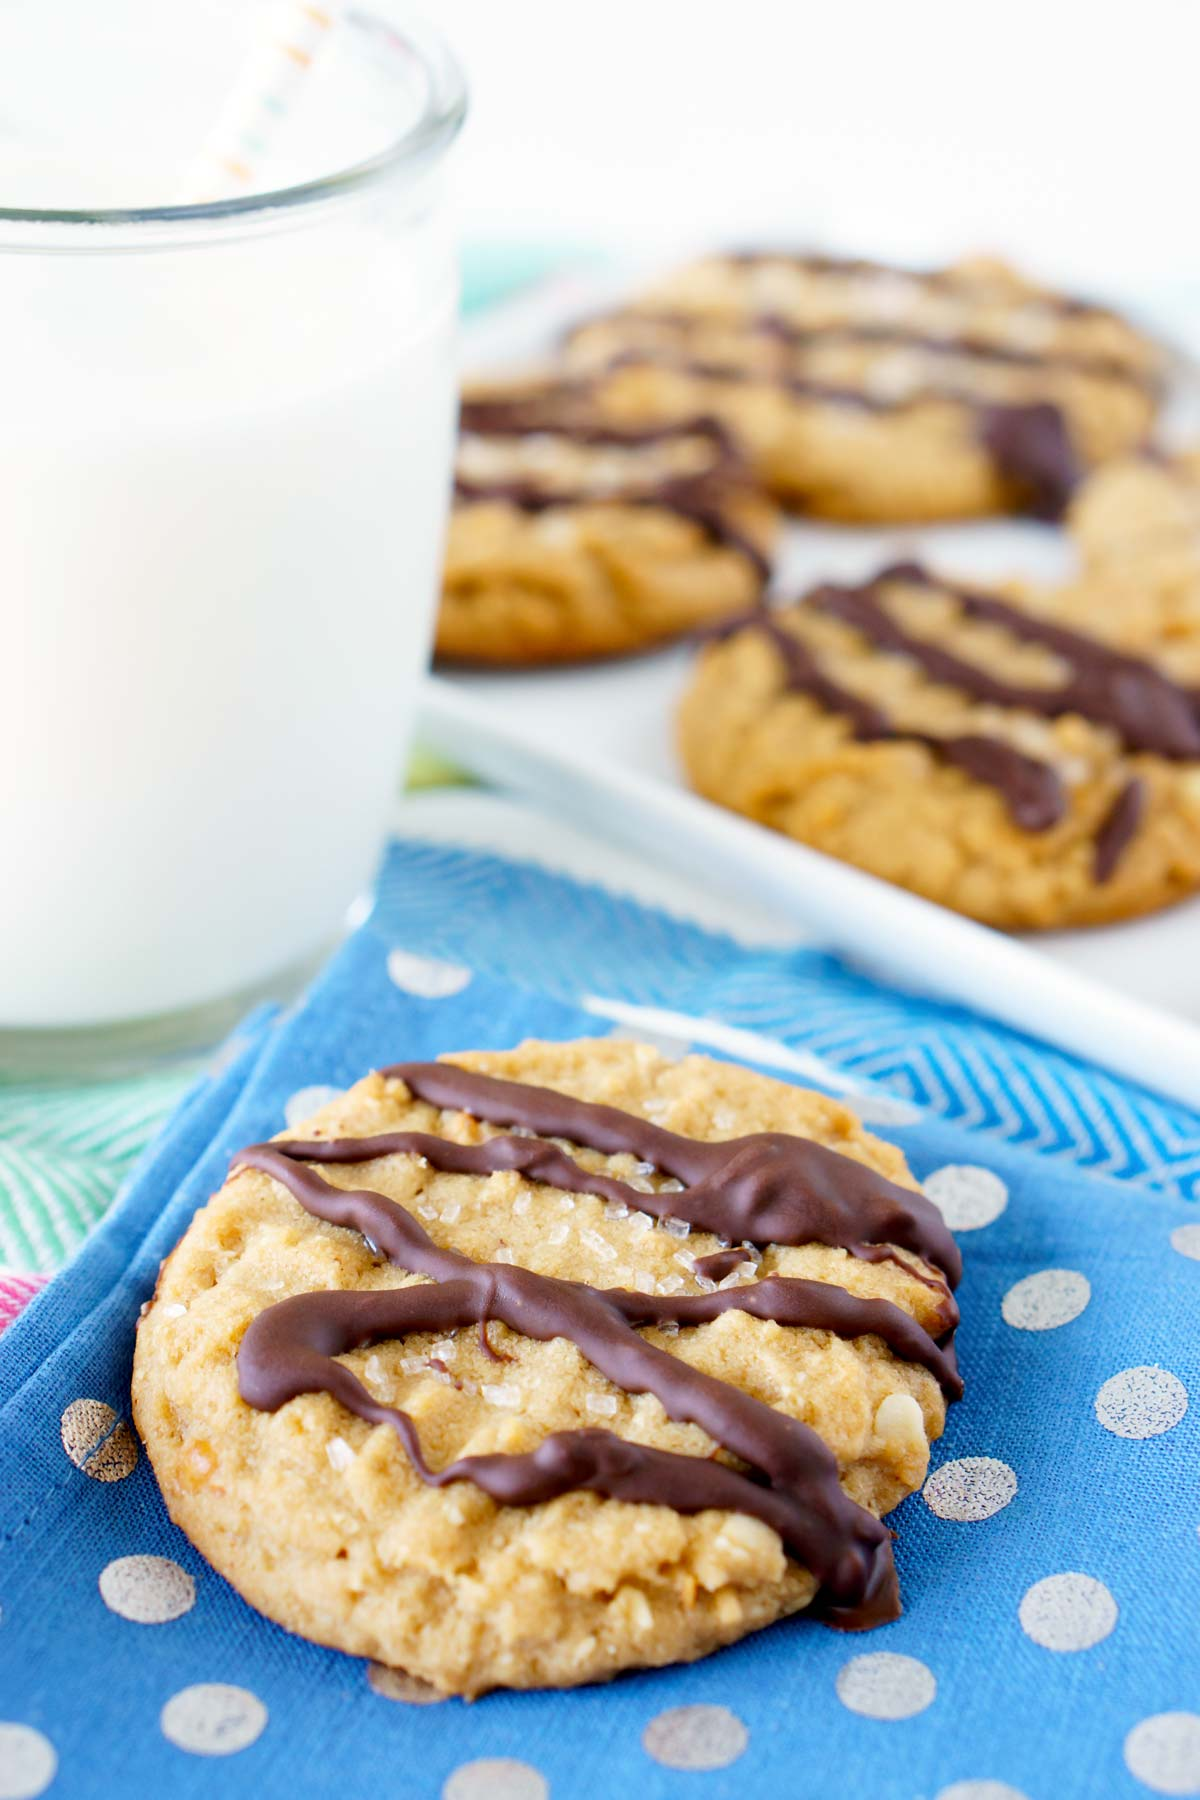 Warm Peanut Butter Cookies served with milk.